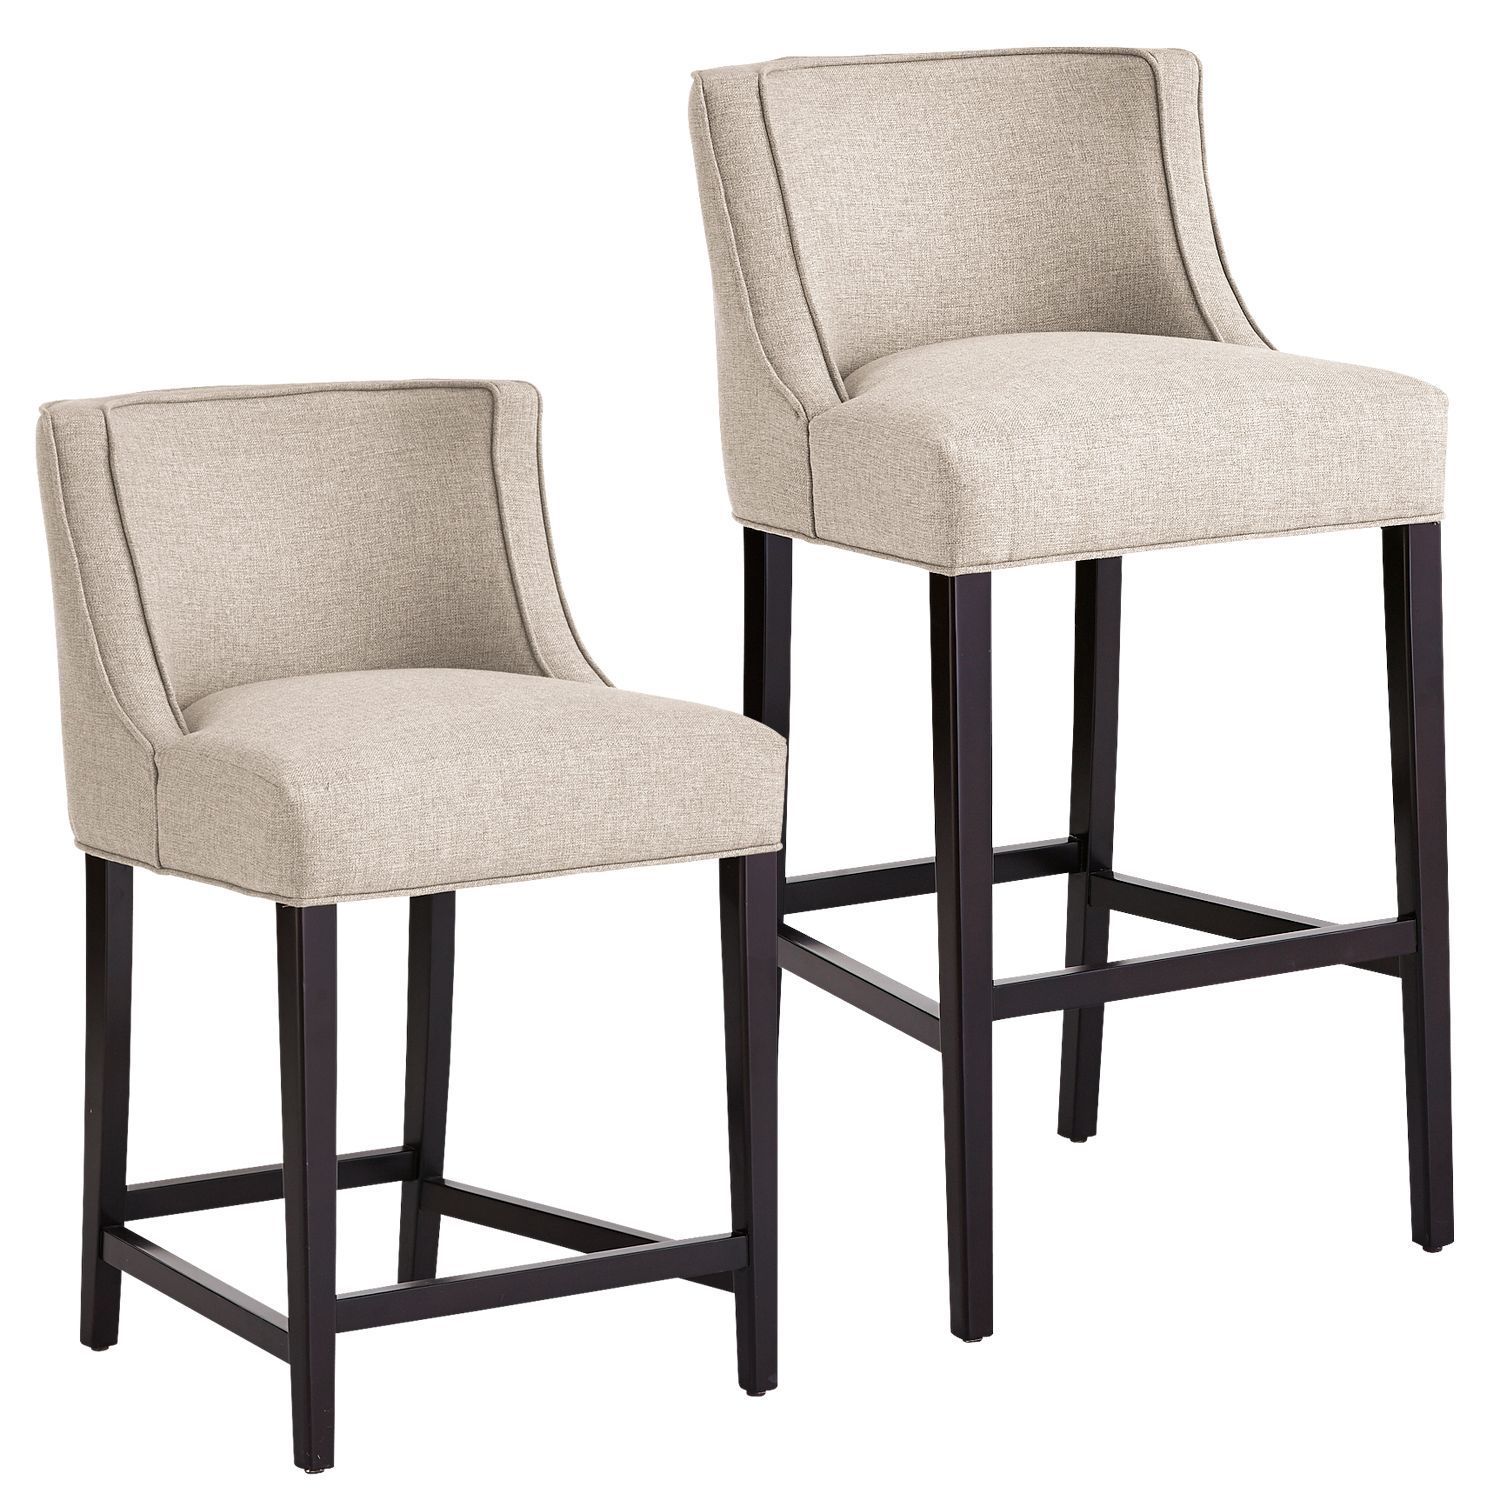 Eva Heather Counter Bar Stool Pier 1 Imports Upholstered Bar